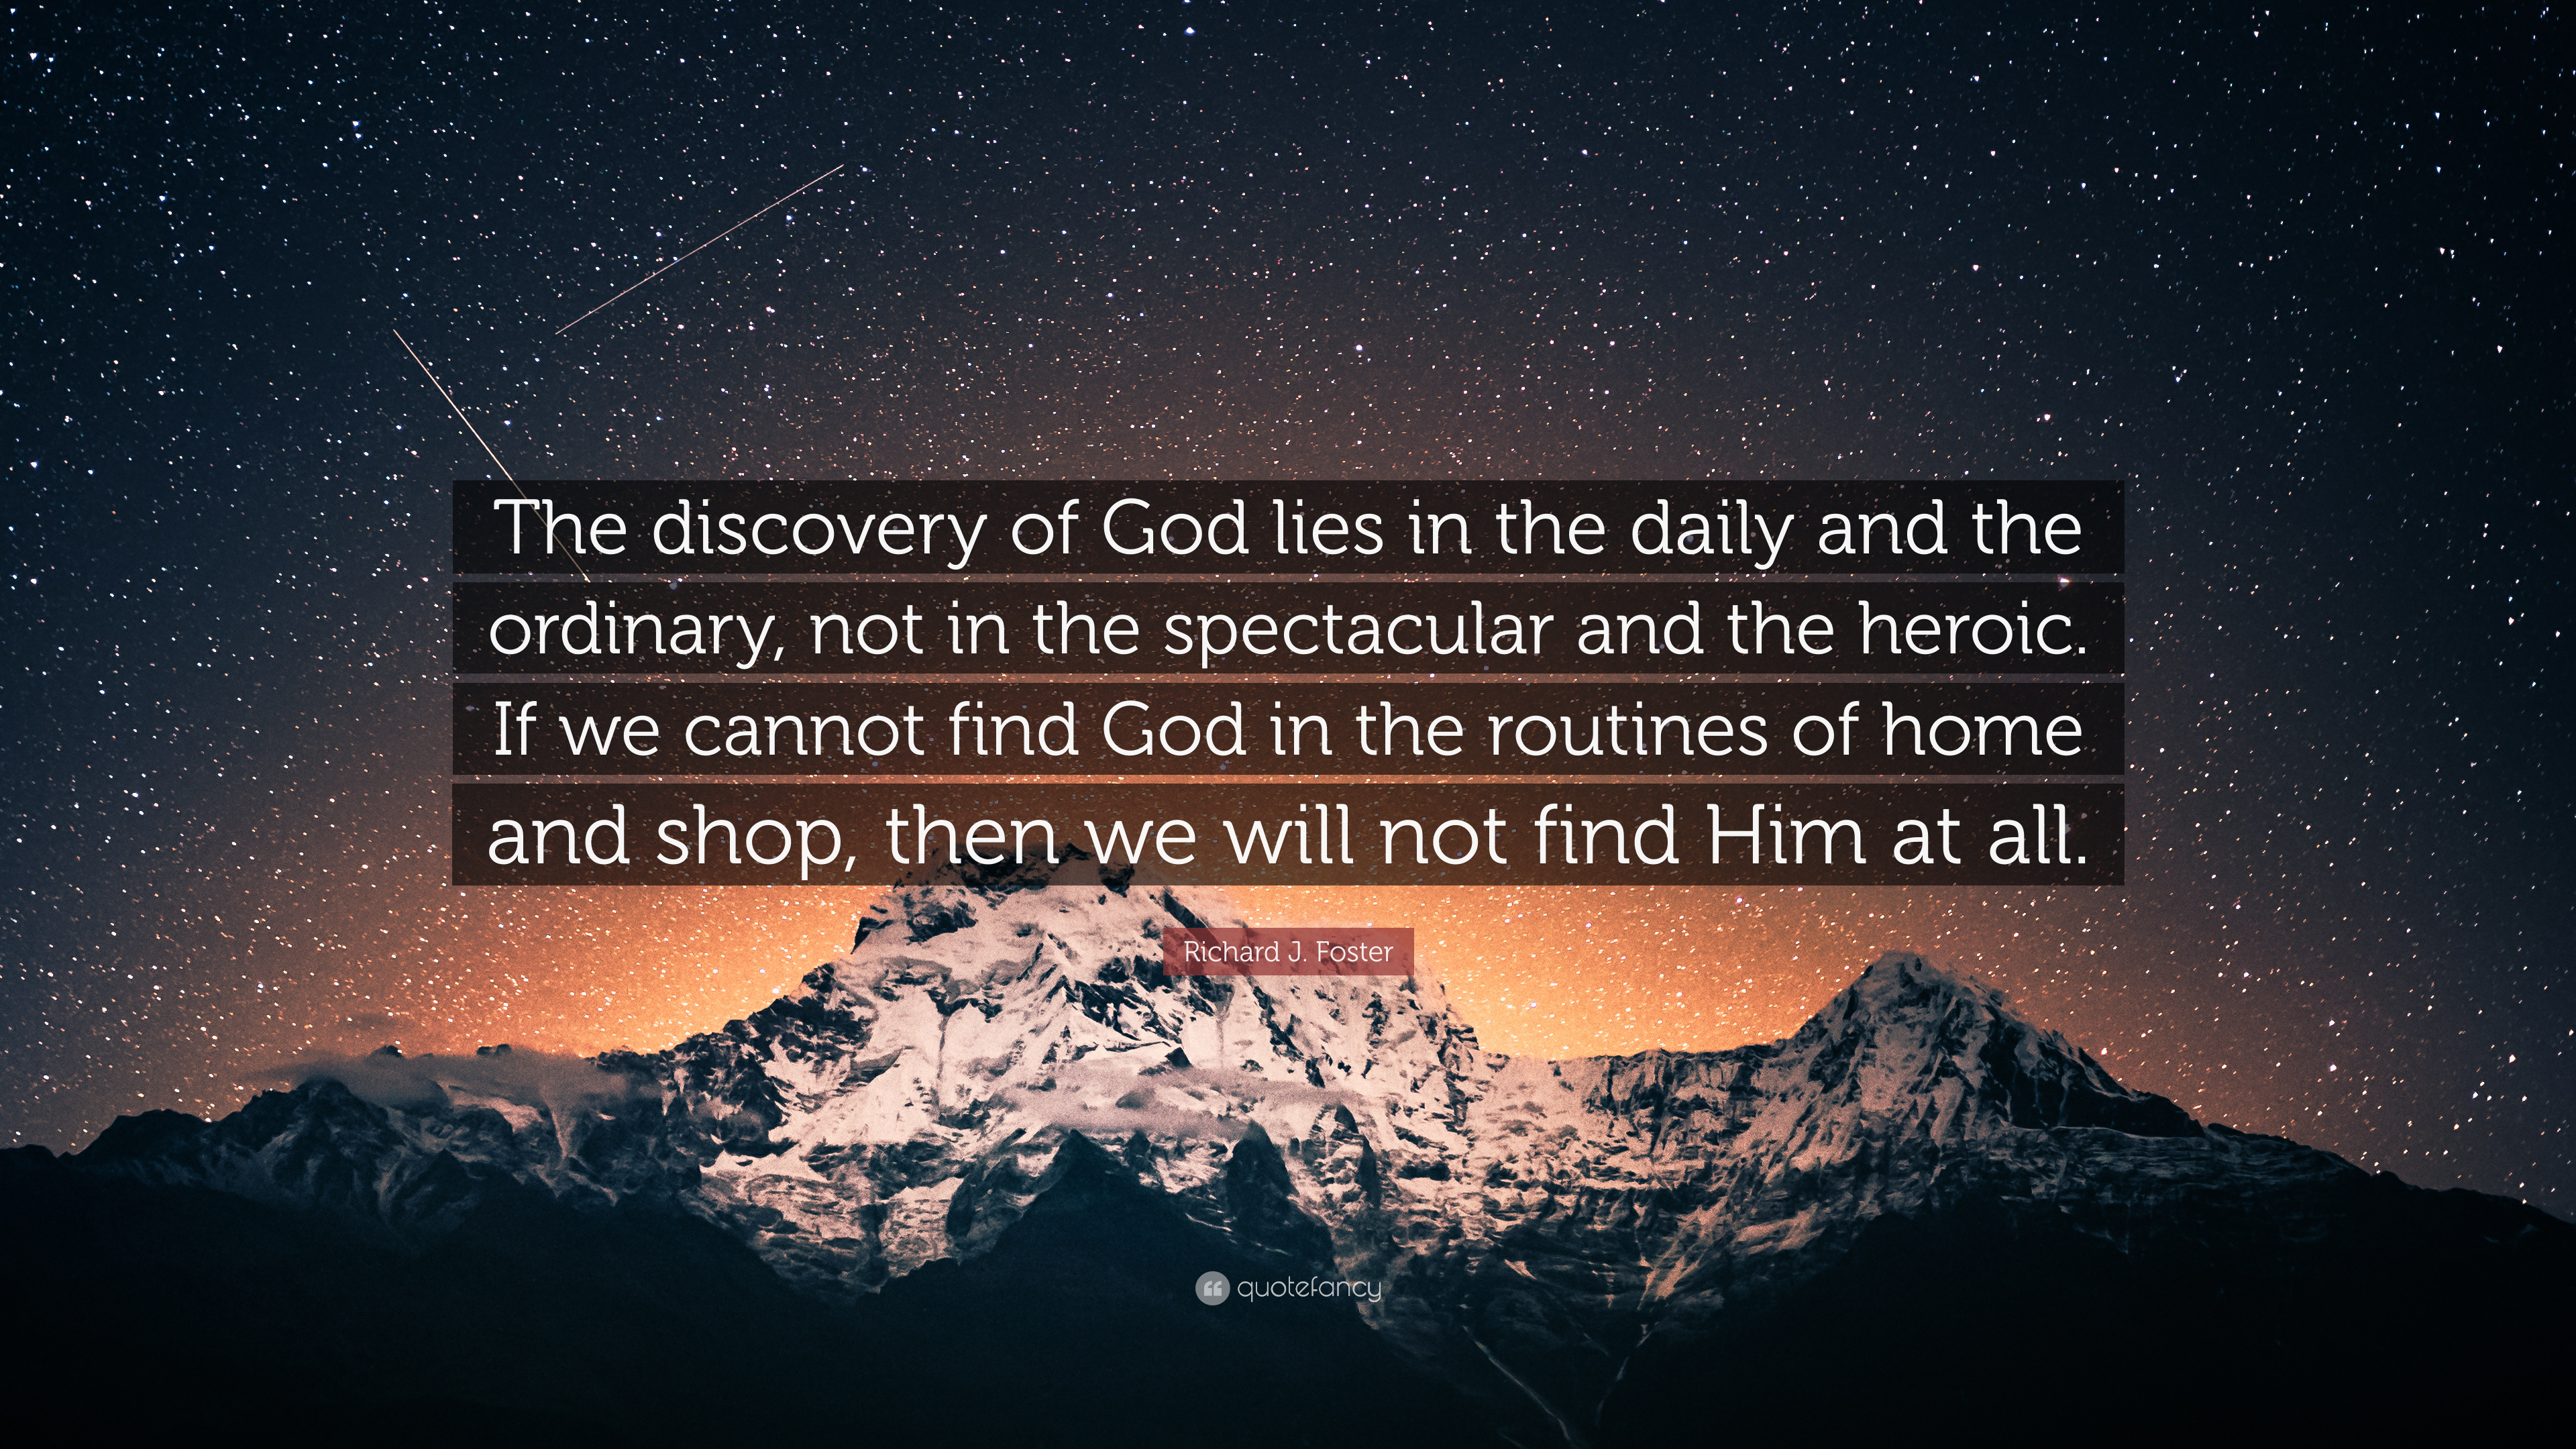 """Richard J. Foster Quote: """"The discovery of God lies in the daily and the  ordinary, not in the spectacular and the heroic. If we cannot find God  in..."""""""